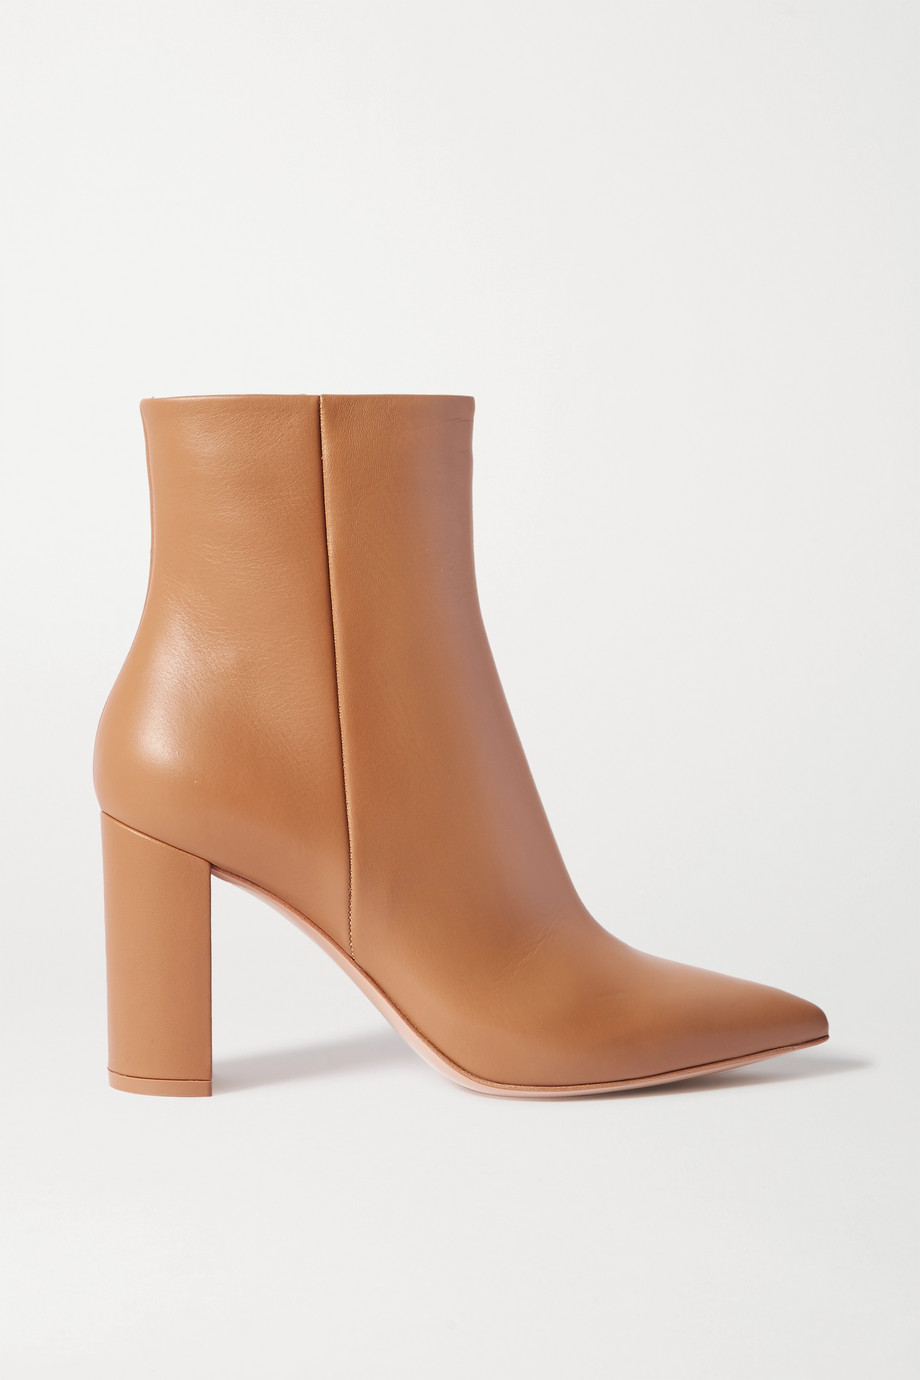 Gianvito Rossi Piper 85 Ankle Boots aus Leder